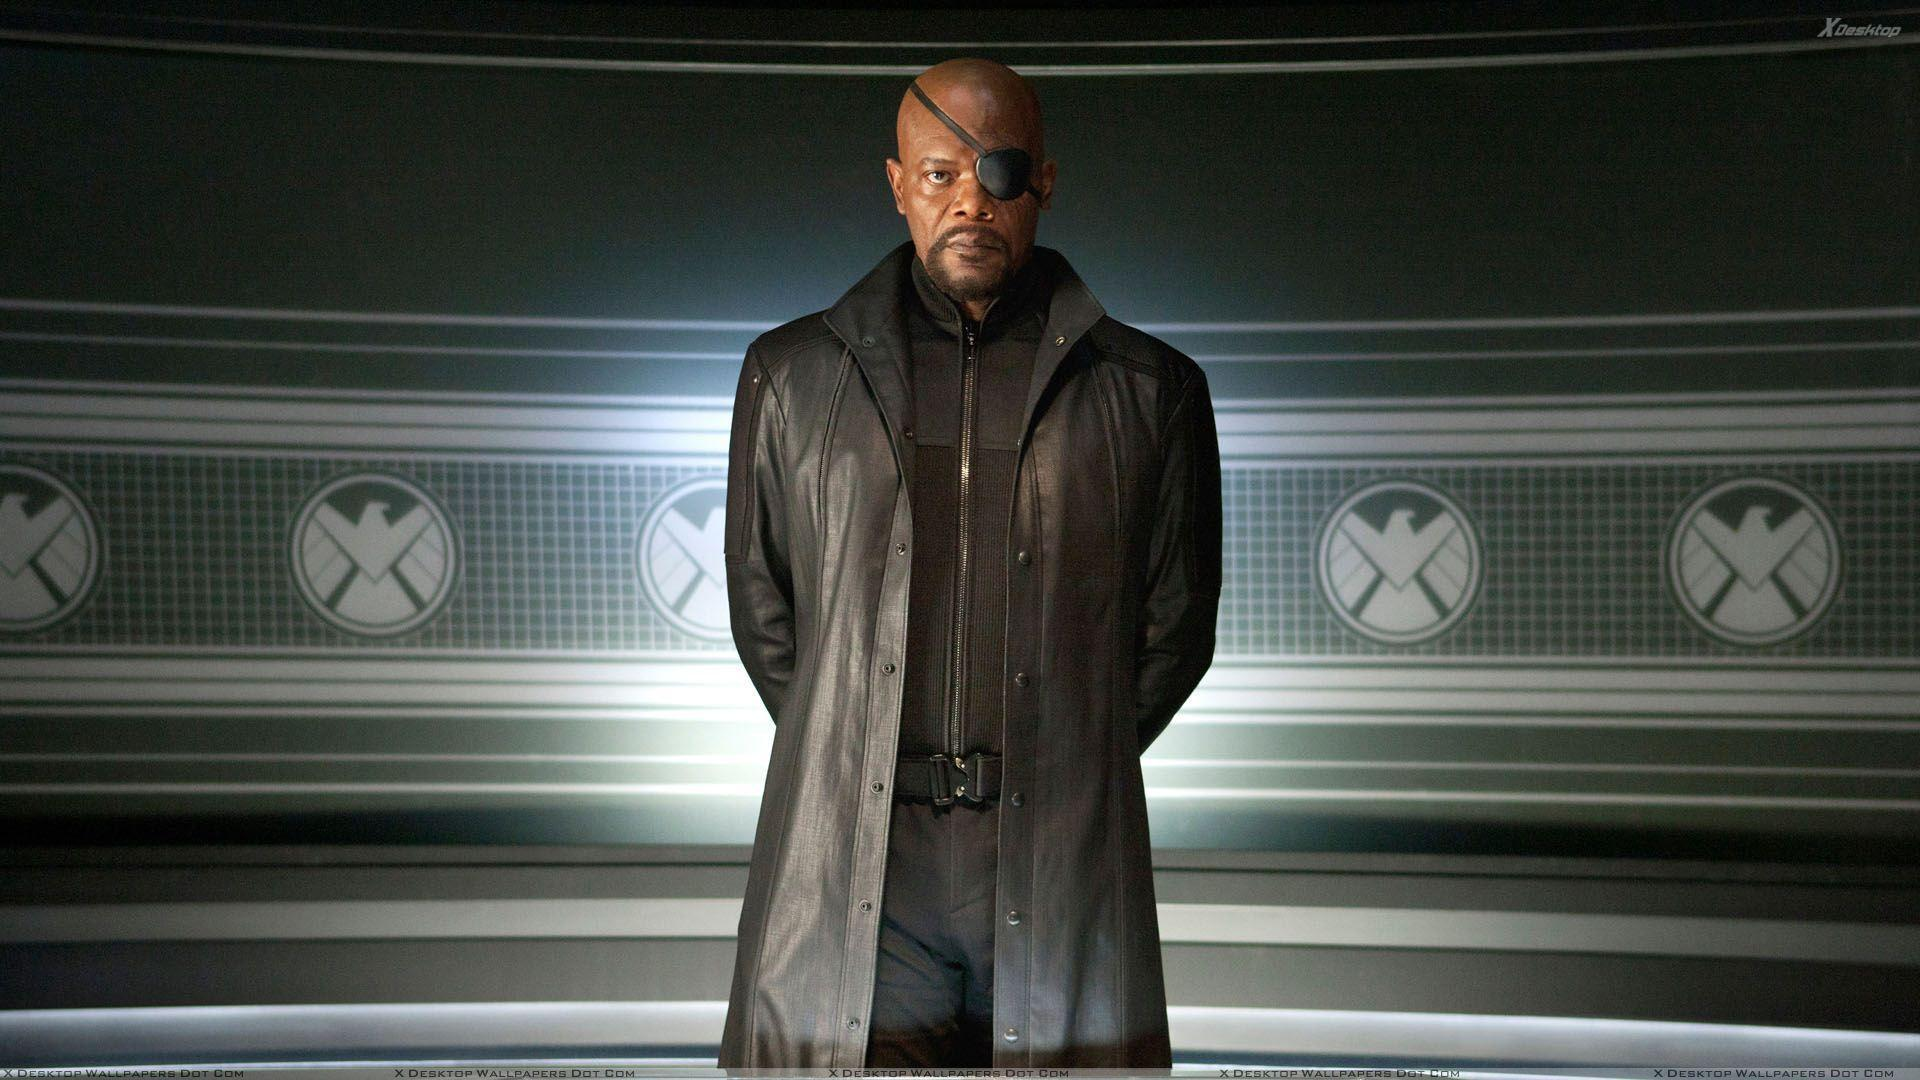 The Avengers – Samuel L. Jackson As Nick Fury In Black Dress Wallpapers